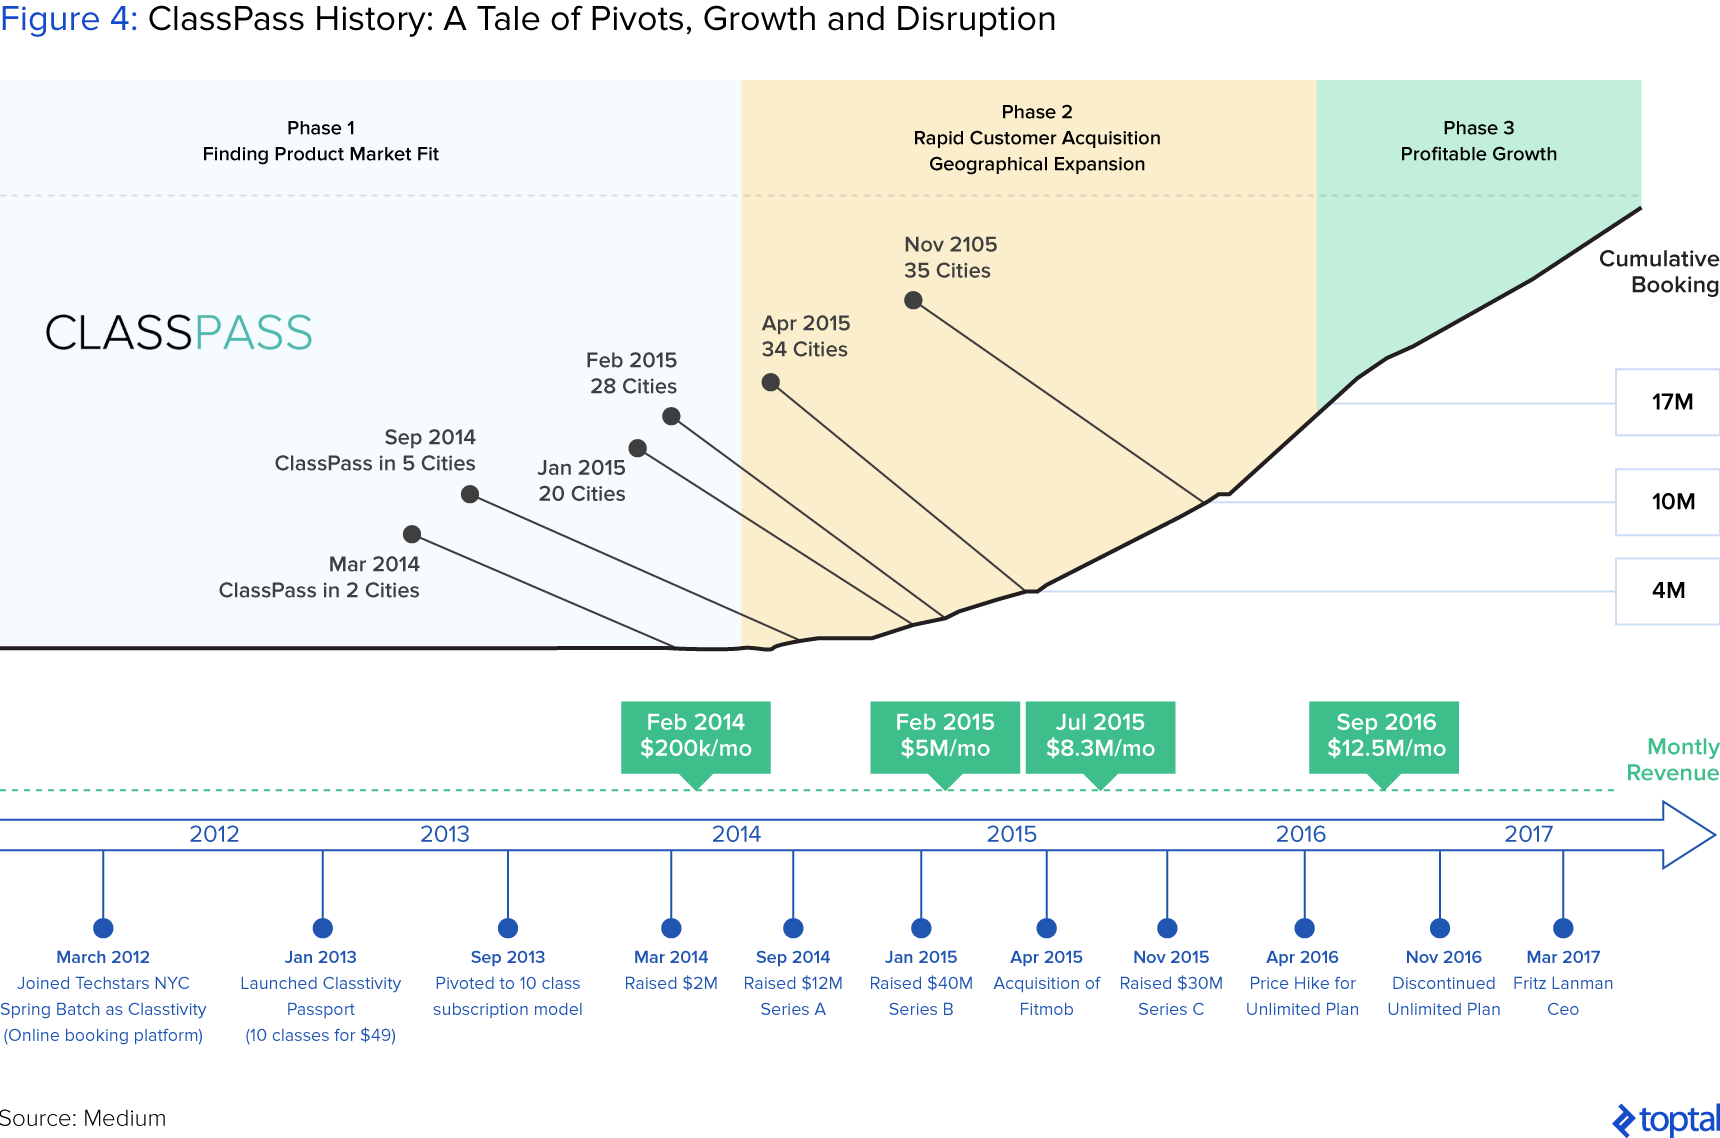 Figure 4: ClassPass History: A Tale of Pivots, Growth, and Disruption